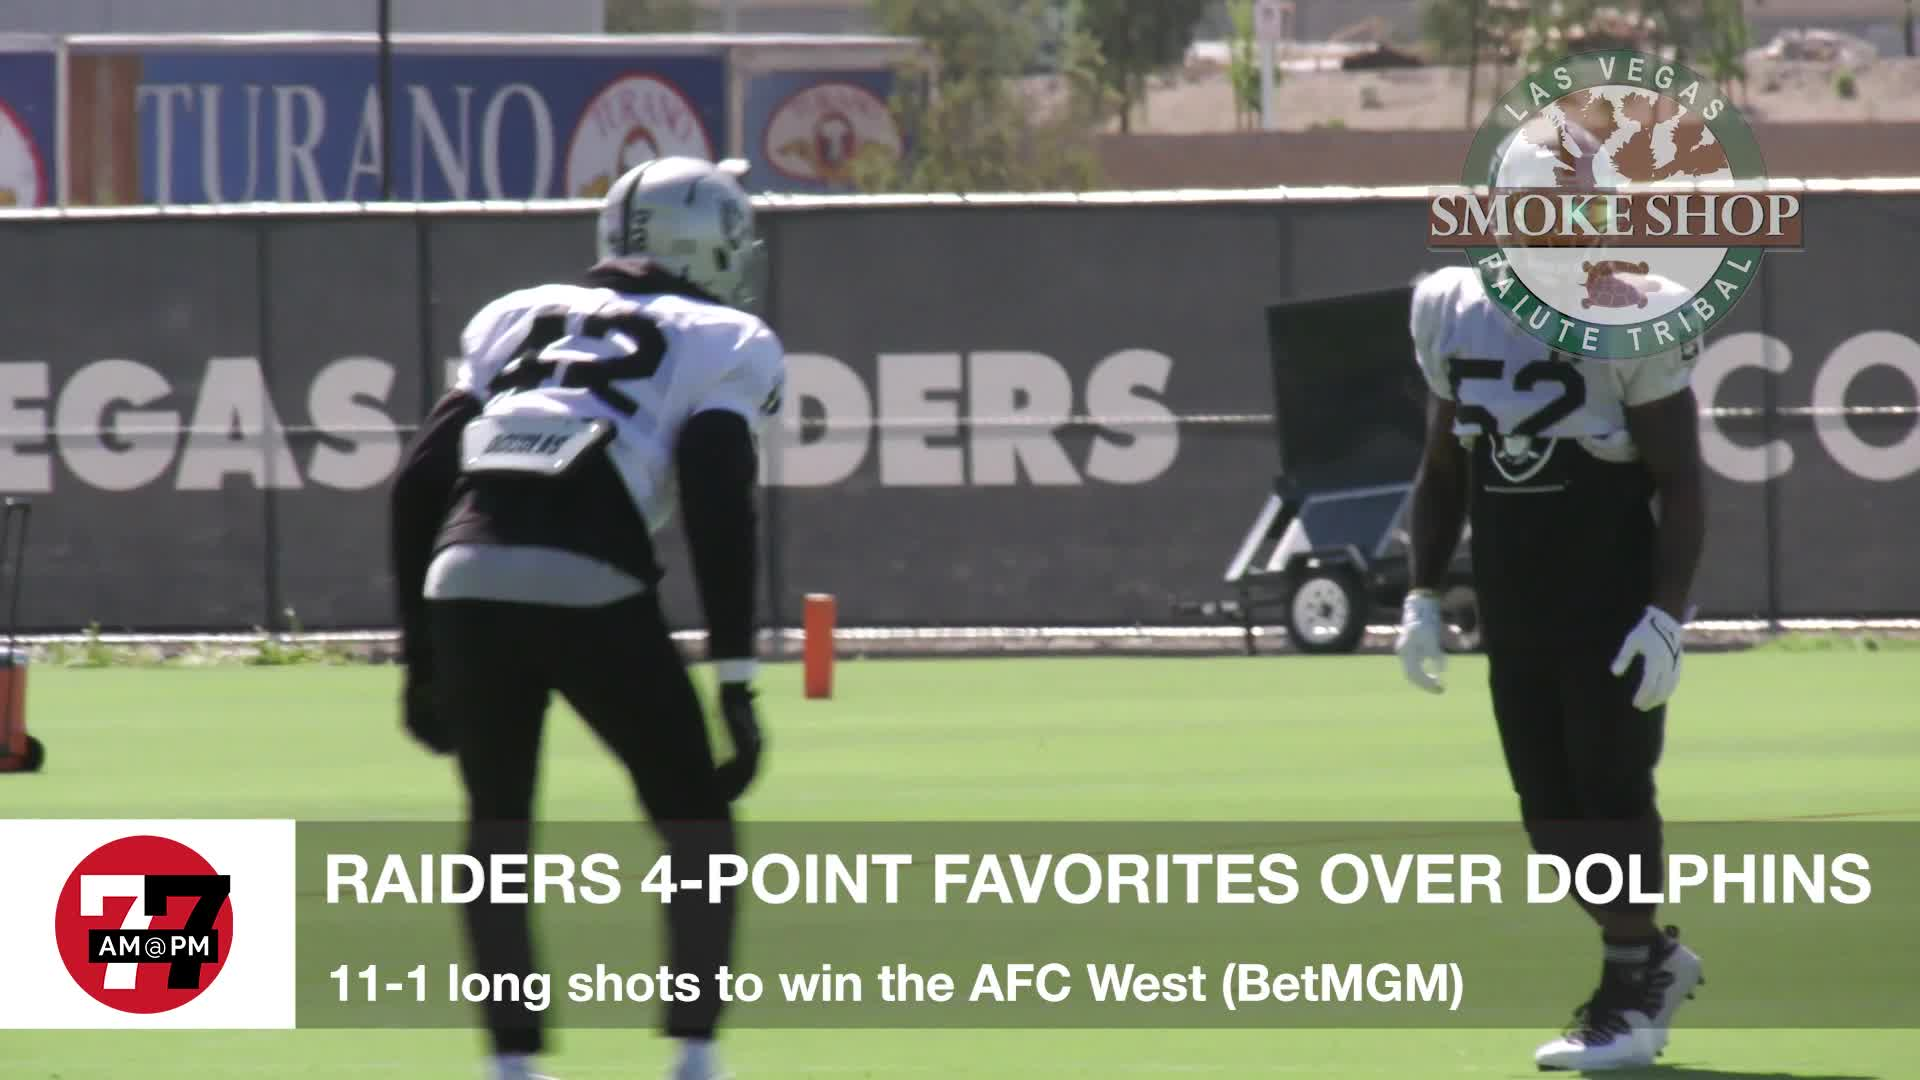 7@7PM Raiders 4 Point Favorites Over Dolphins